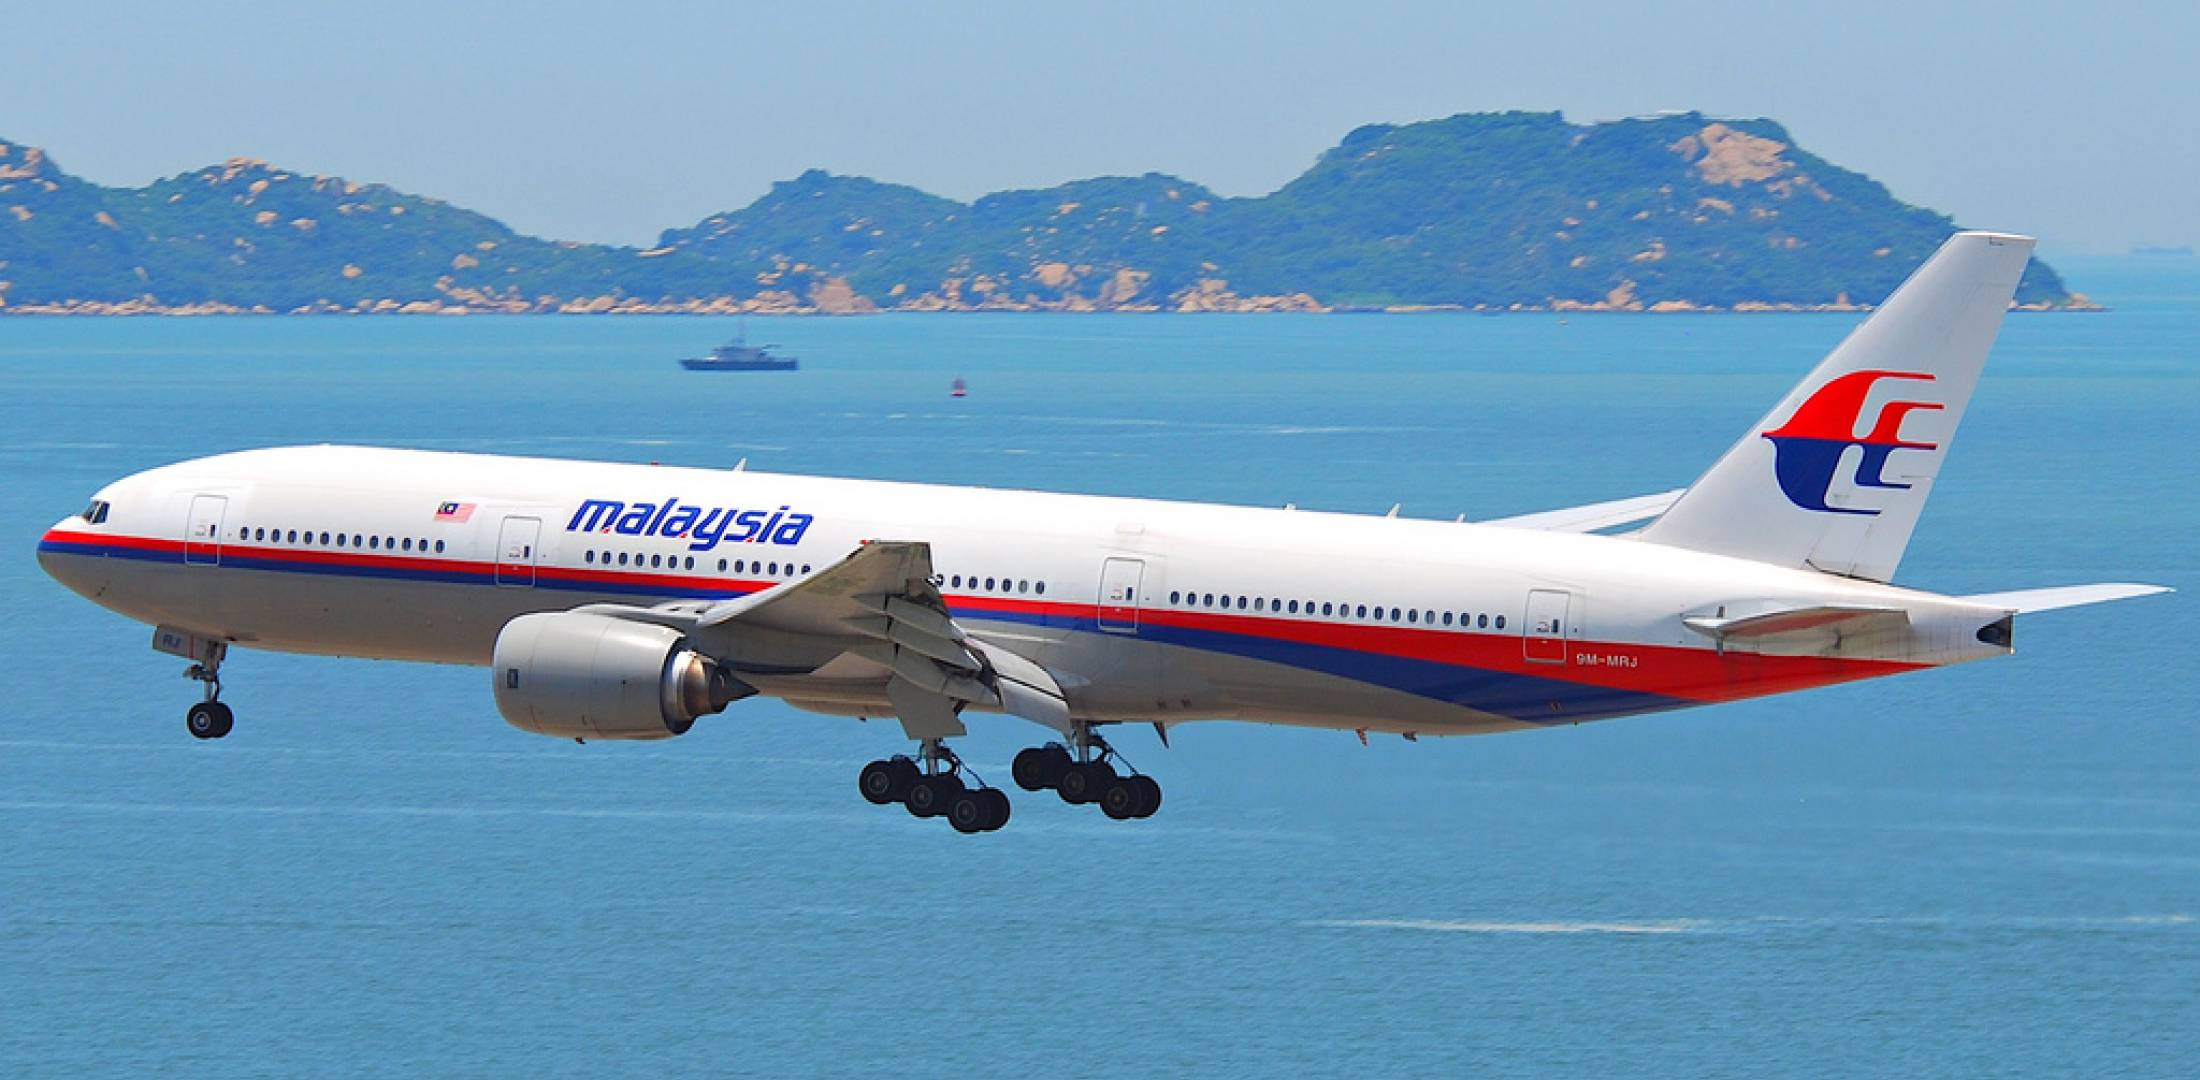 Malaysian pm confirms 777 flaperon came from mh370 air transport malaysia airlines lost publicscrutiny Image collections